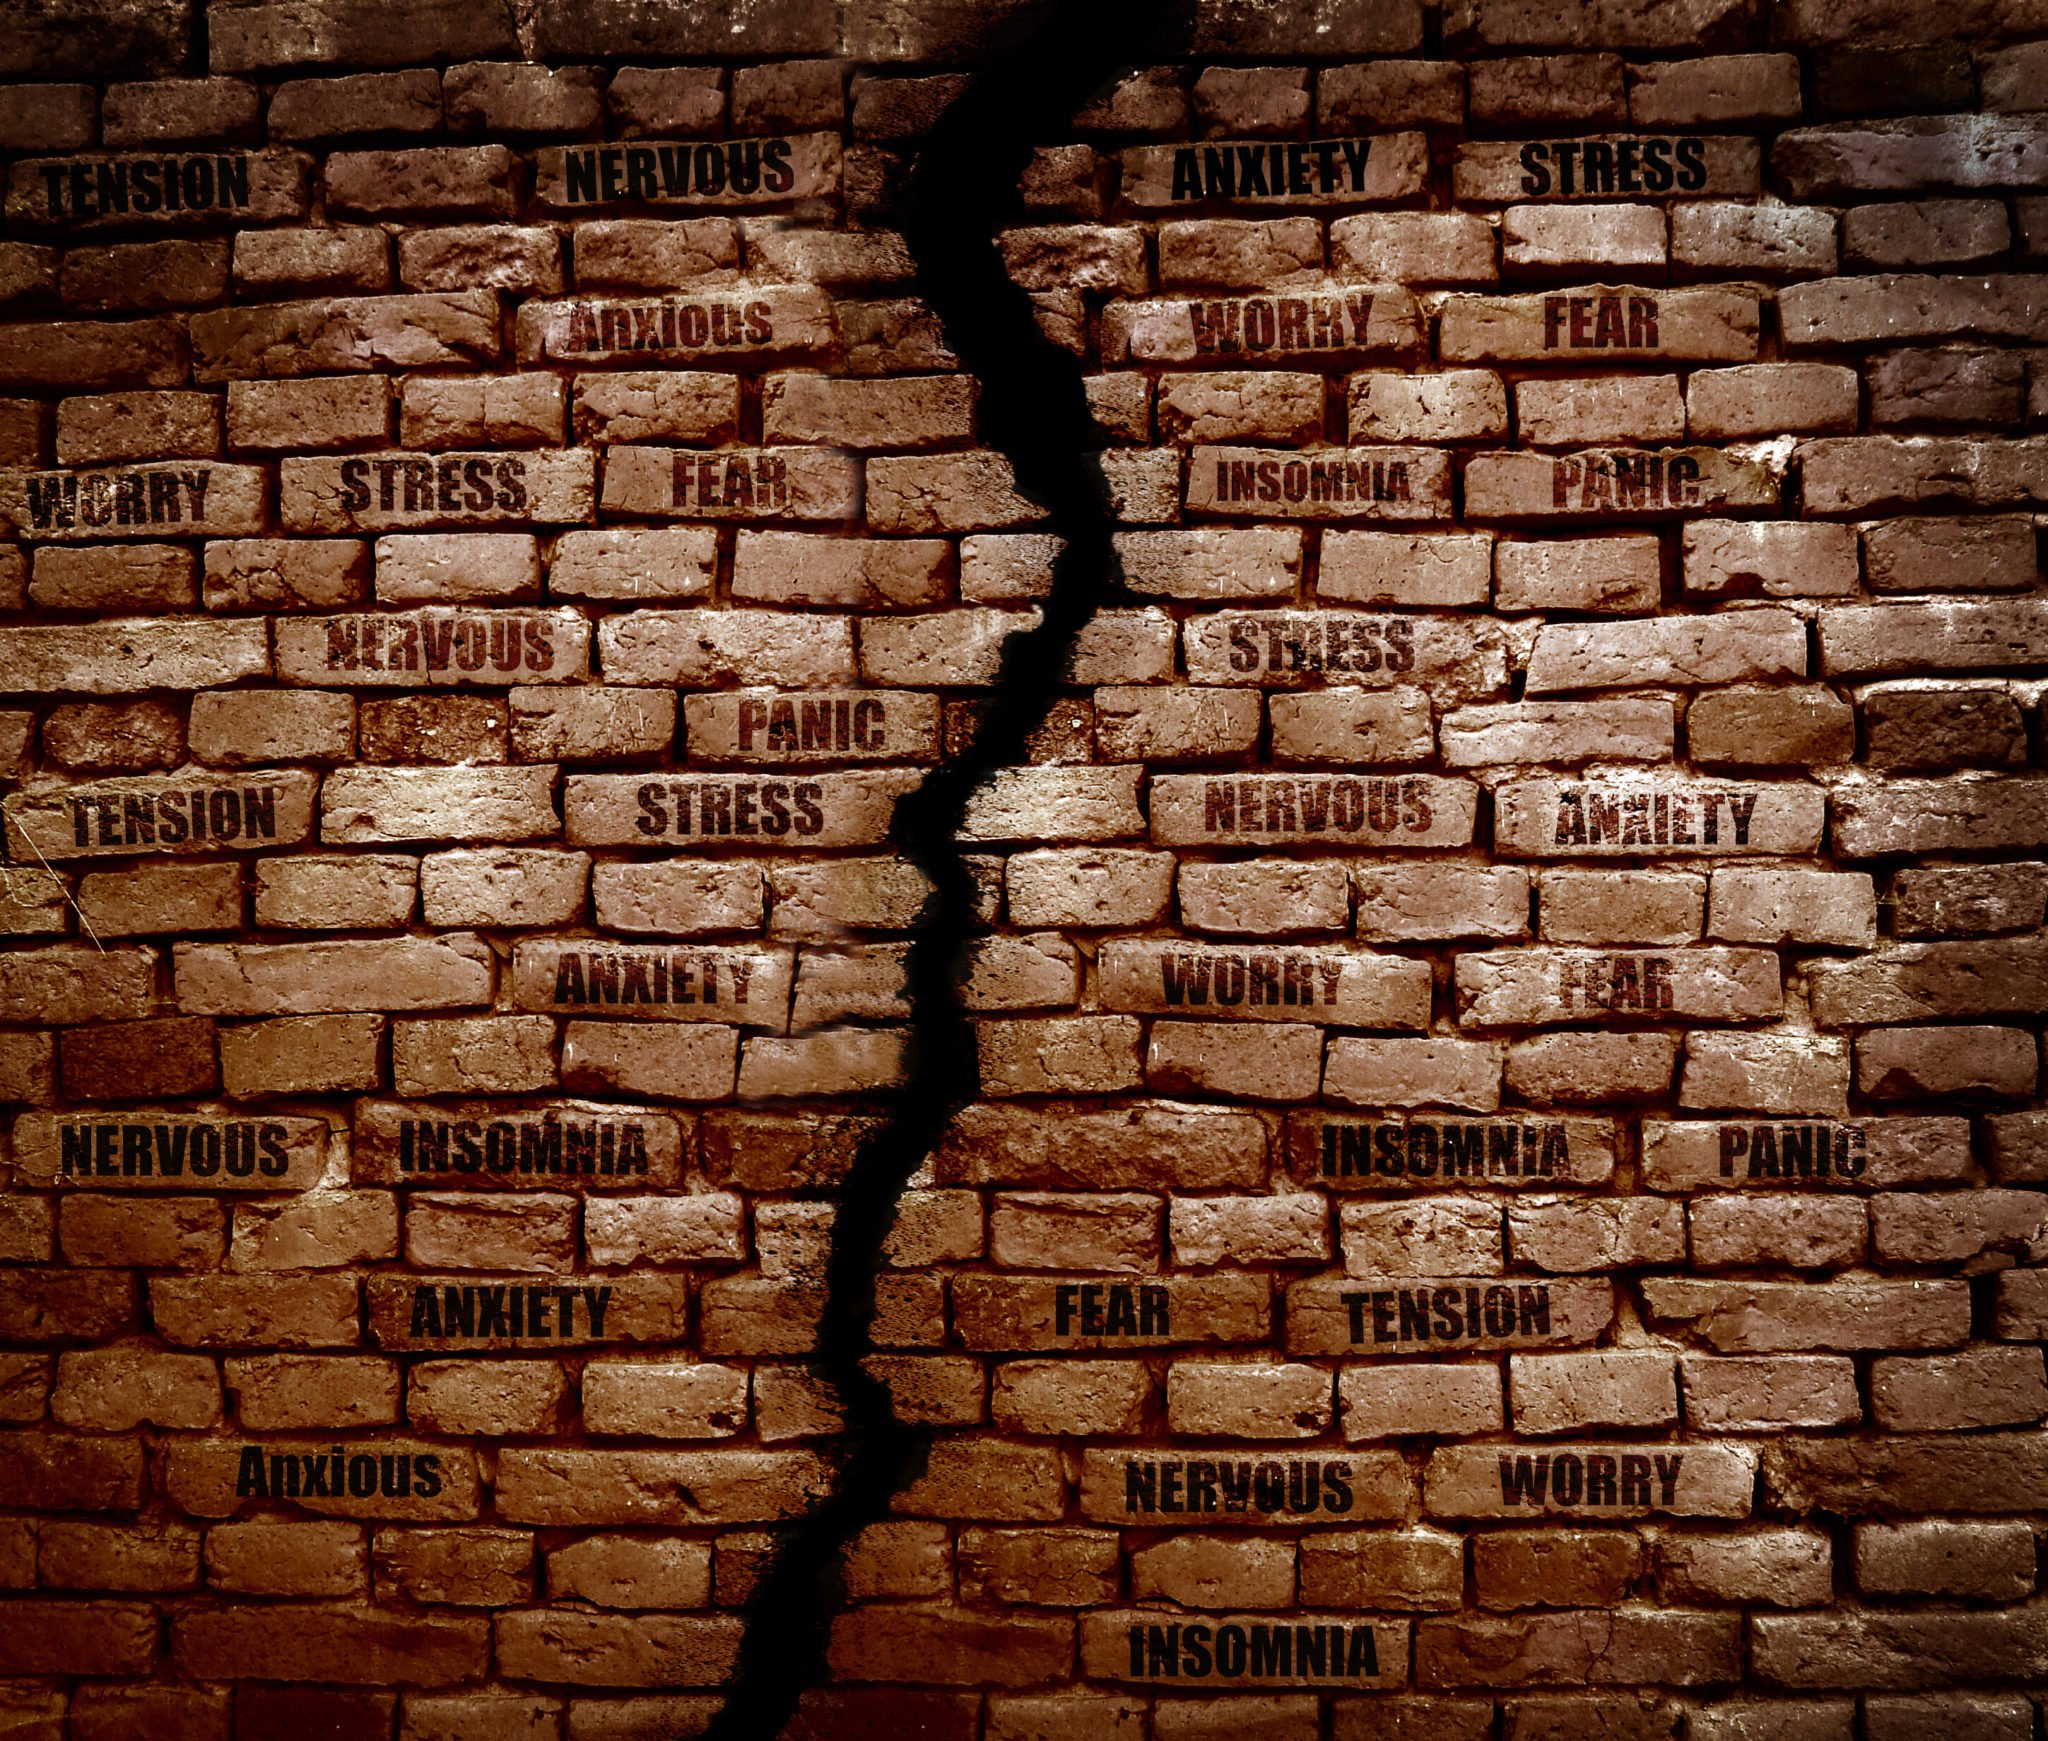 Crack in a brick wall with Stress, anxiety and various related messages